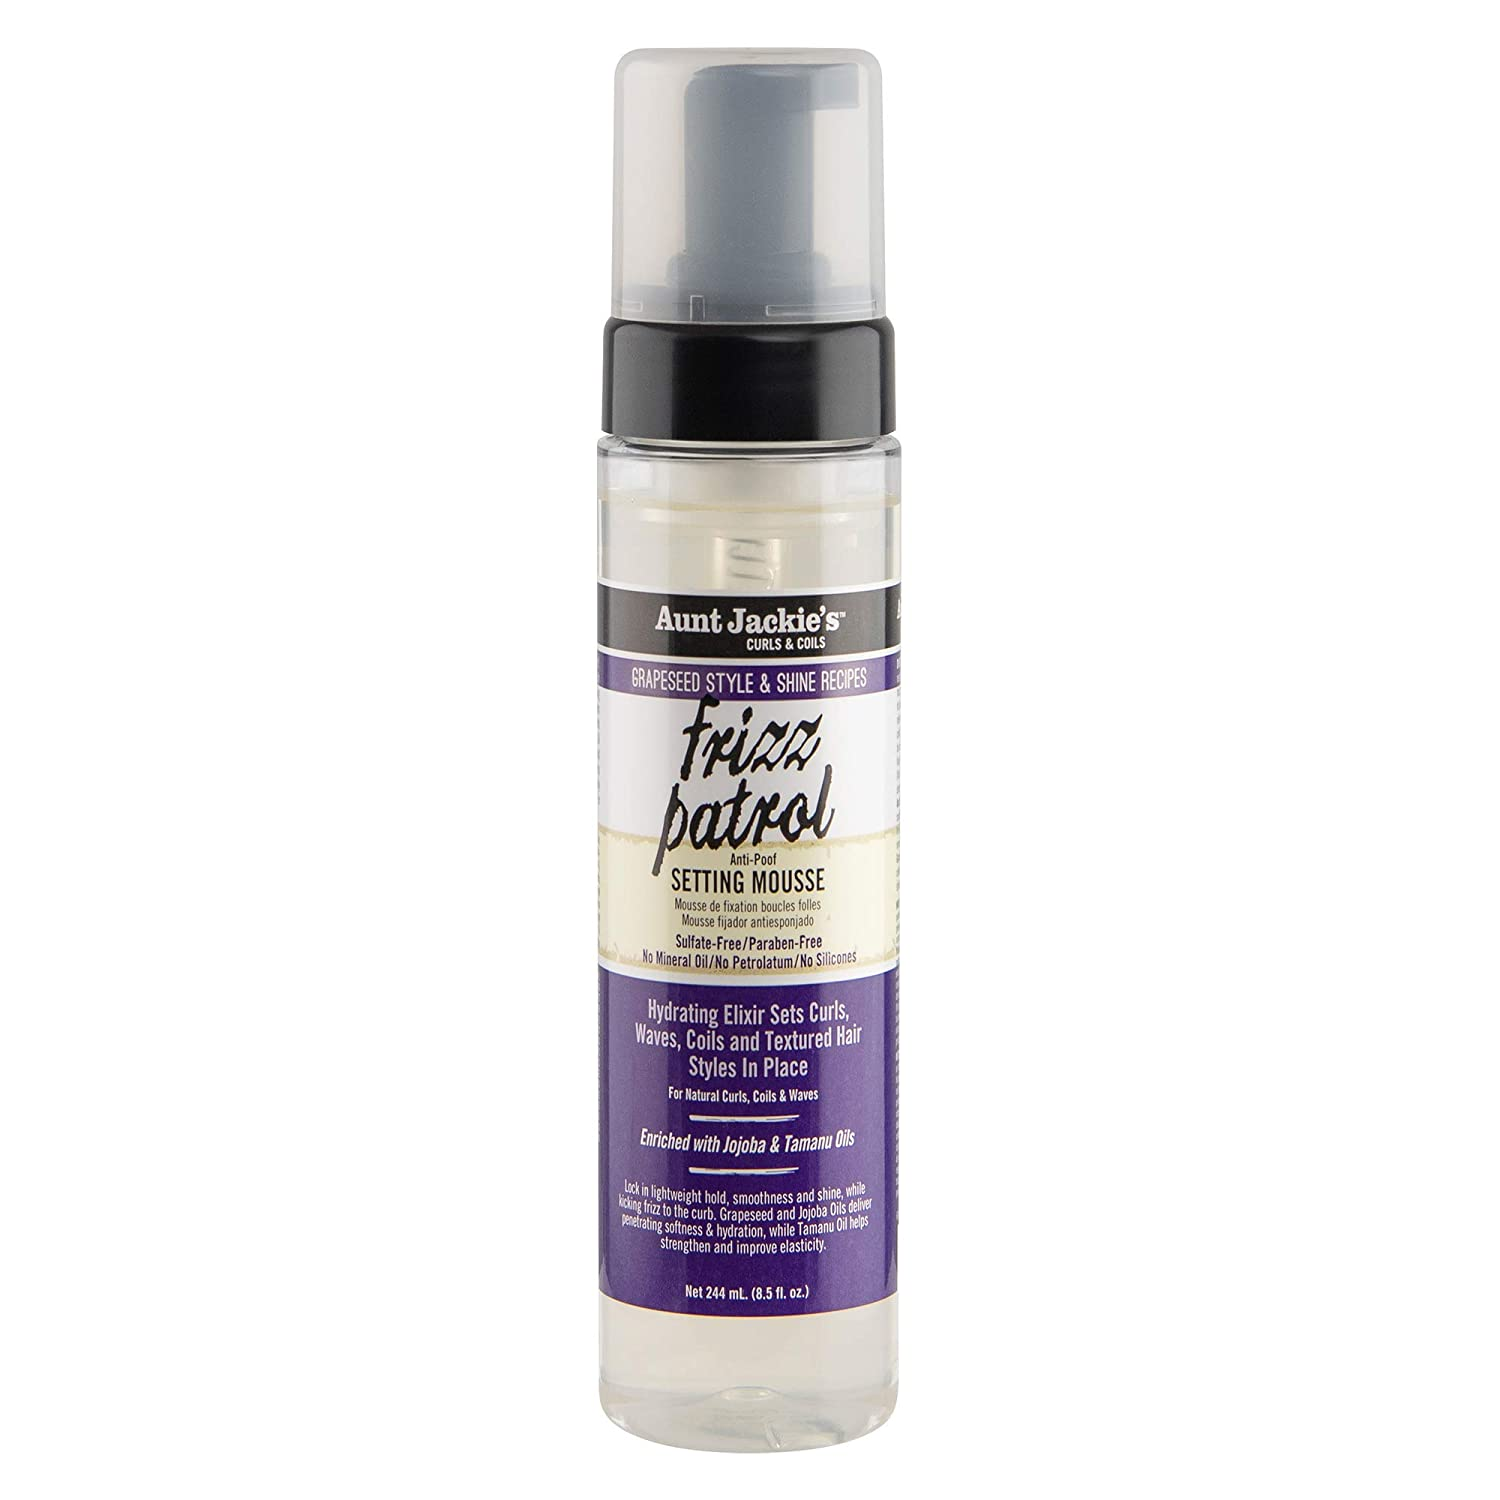 Aunt Jackie's Grapeseed Style and Recipes Frizz Patrol Ant 70% OFF Outlet Shine Selling rankings